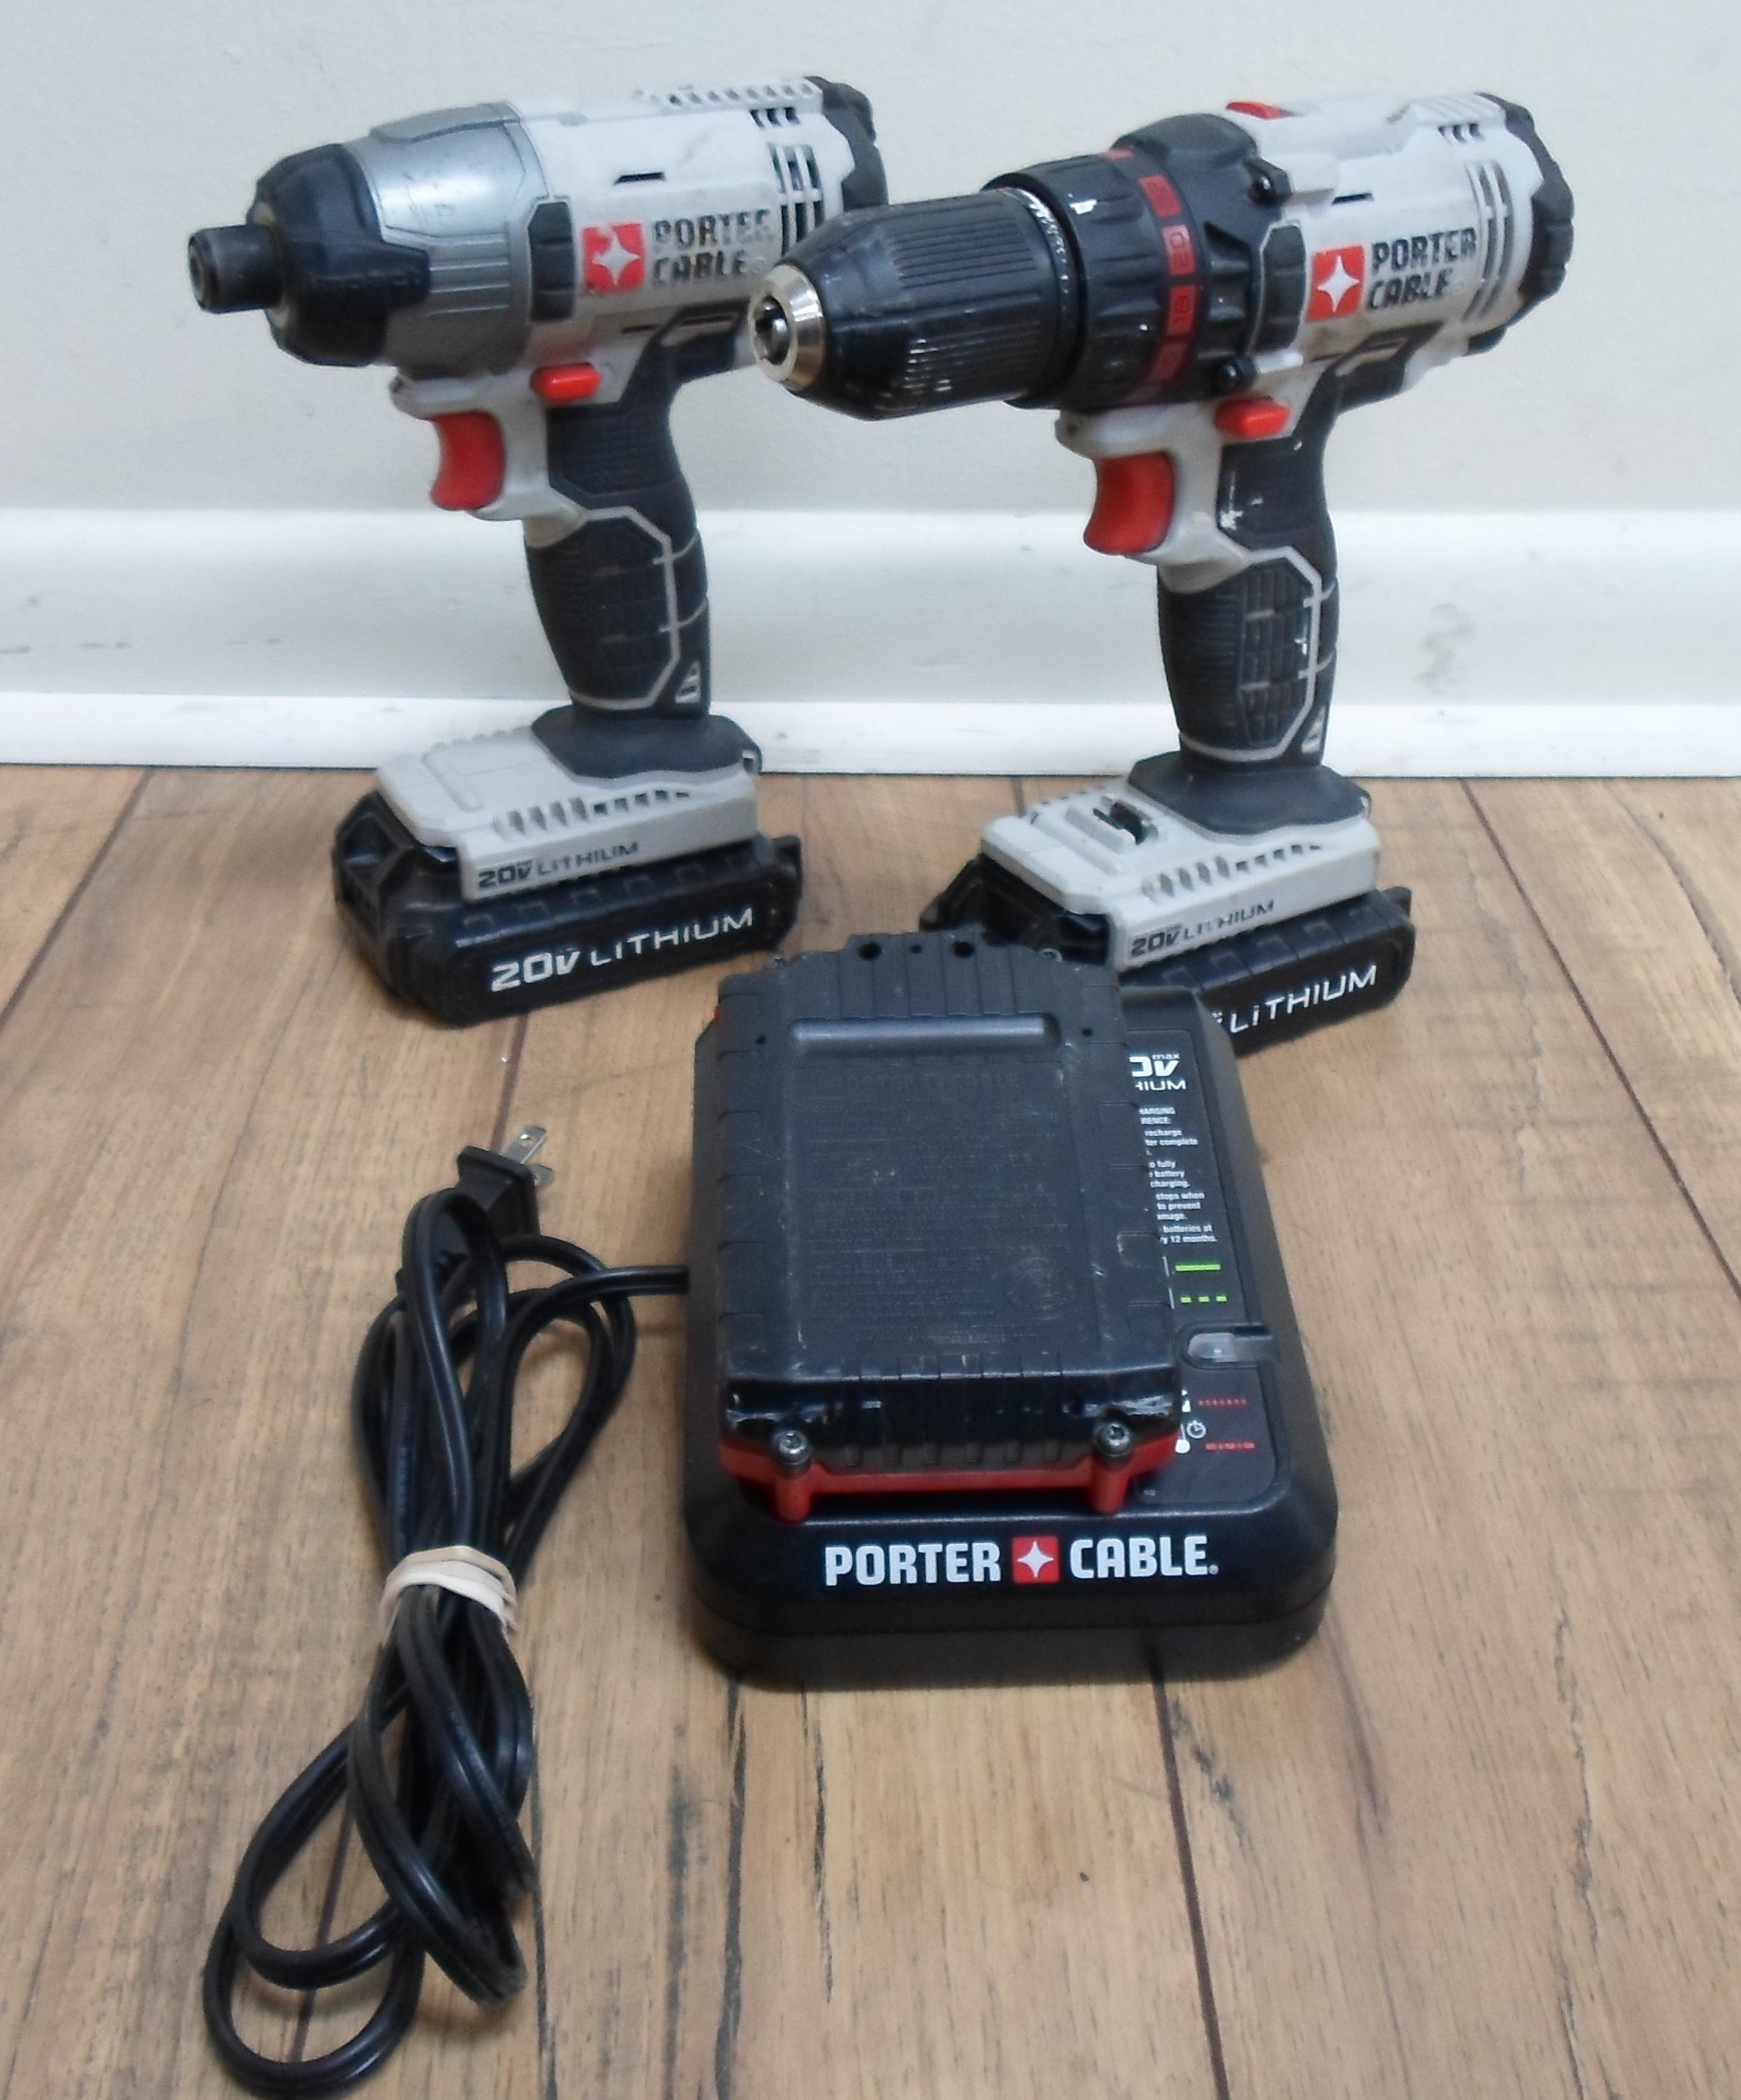 PORTER-CABLE - 20V LITHIUM - TWO DRILL SET